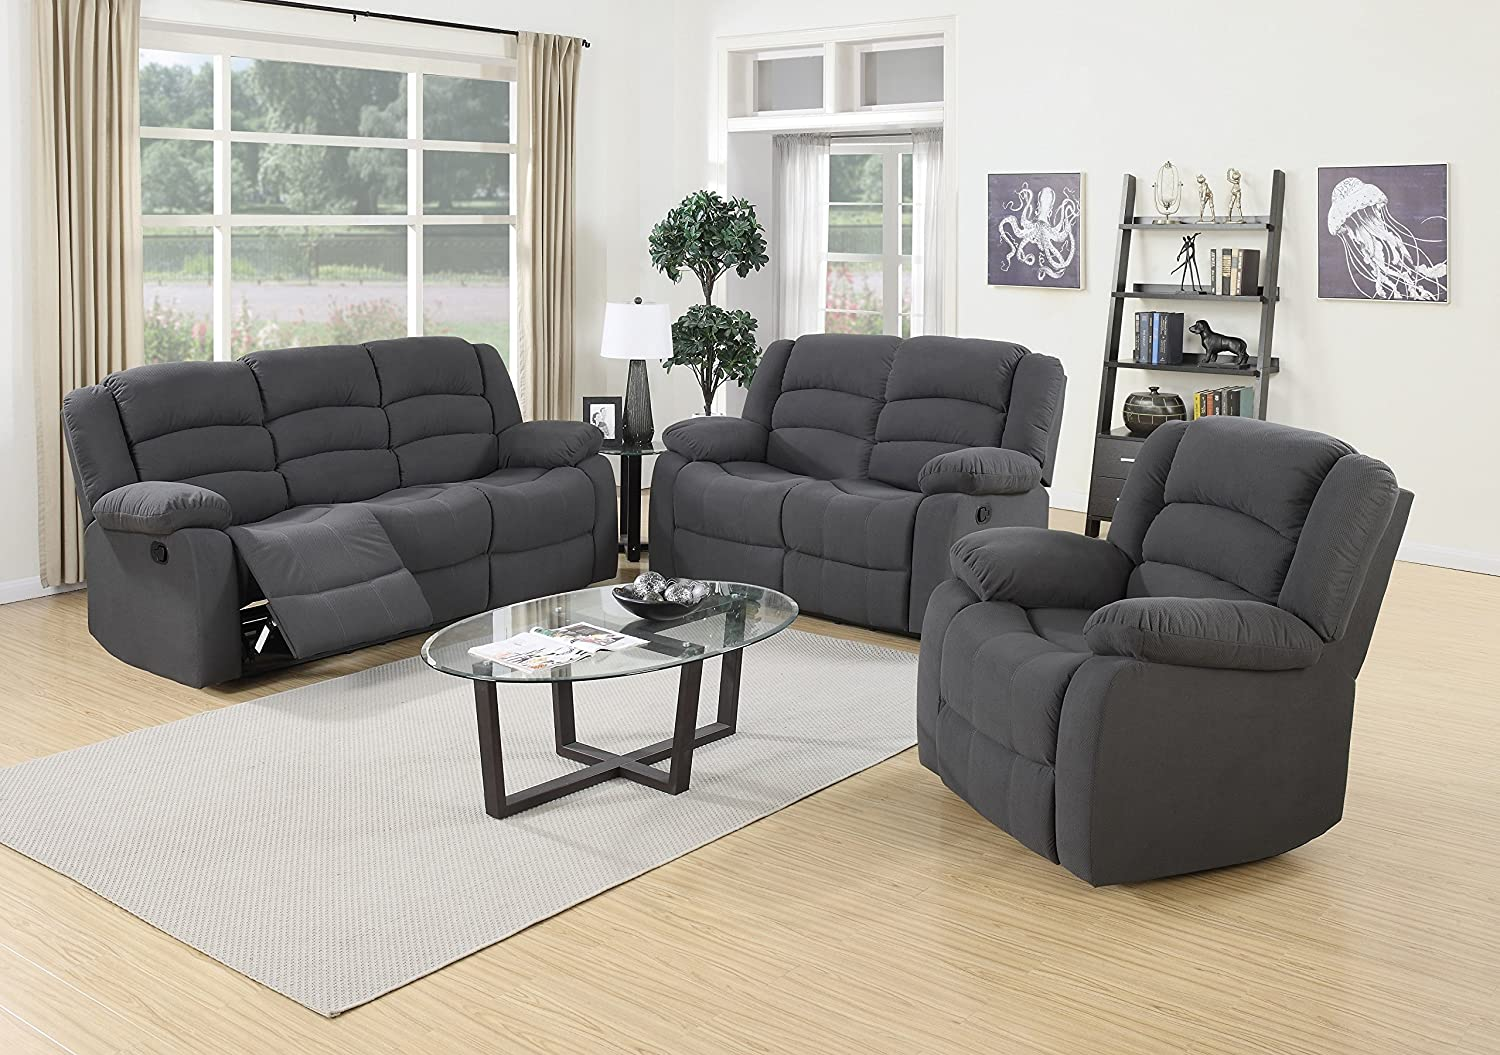 Amazon.com: US Pride Furniture 3 Piece Grey Fabric Reclining Sofa ...